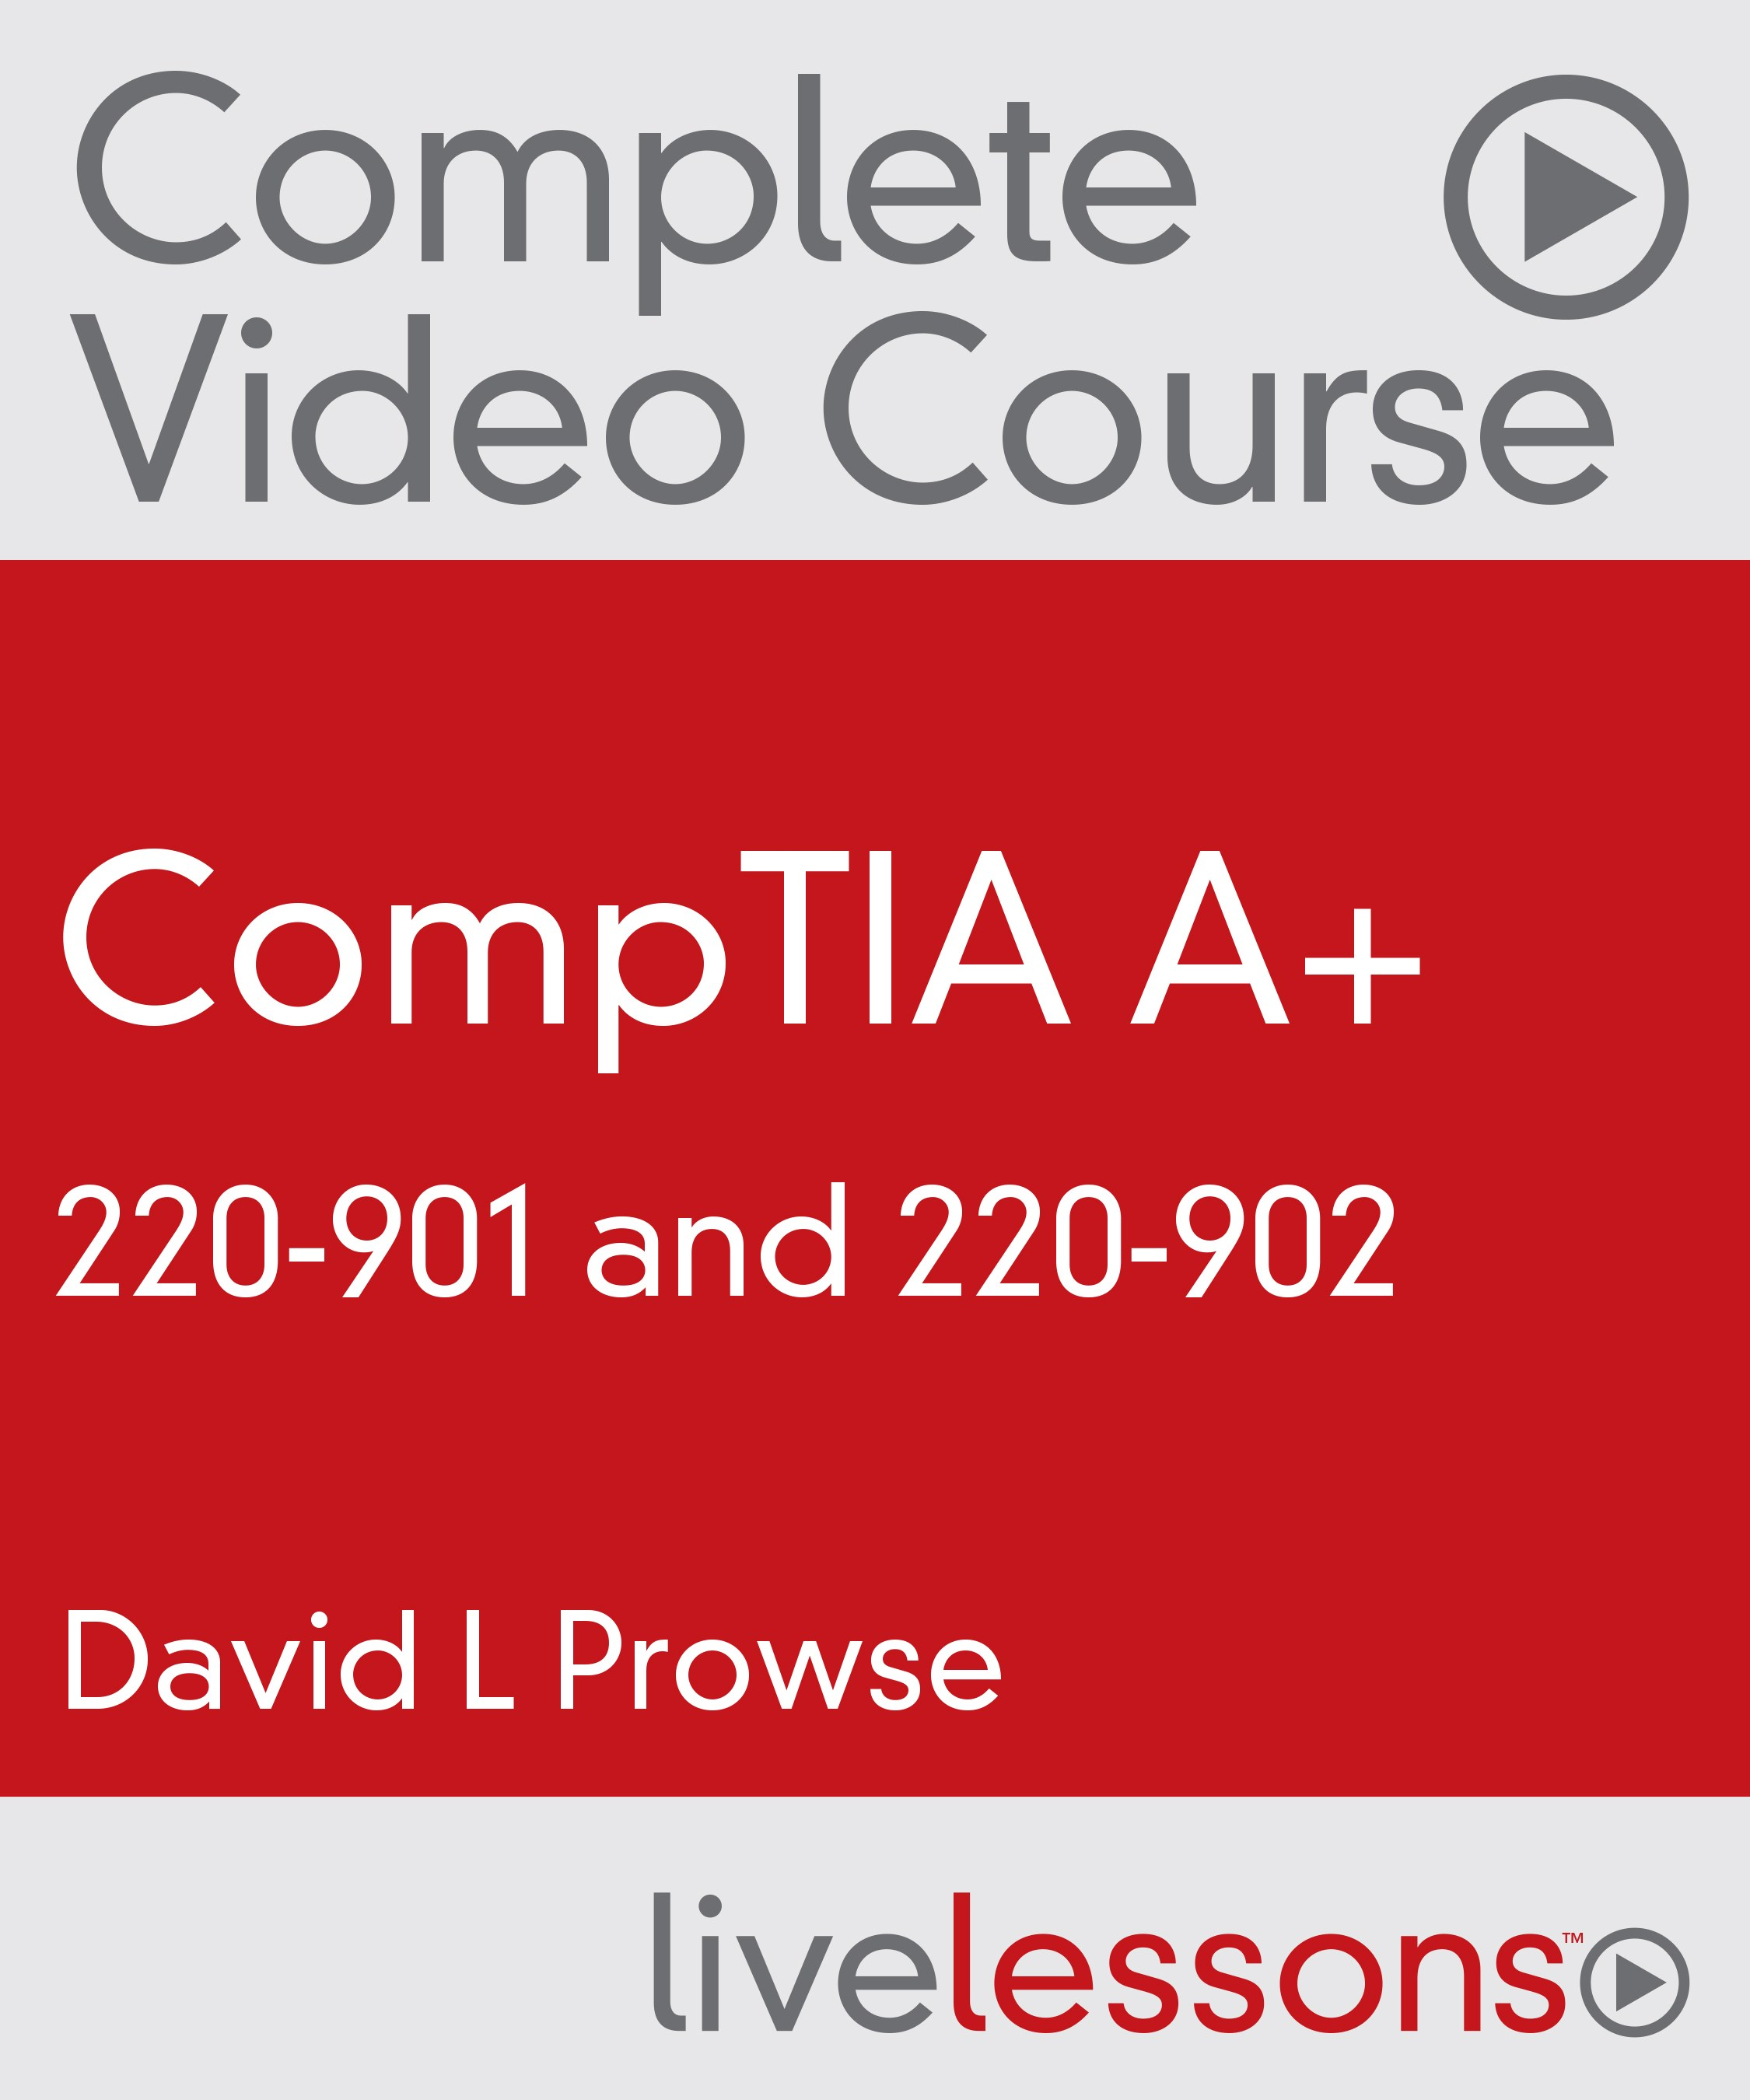 CompTIA A+ 220-901 and 220-902 Complete Video Course Library